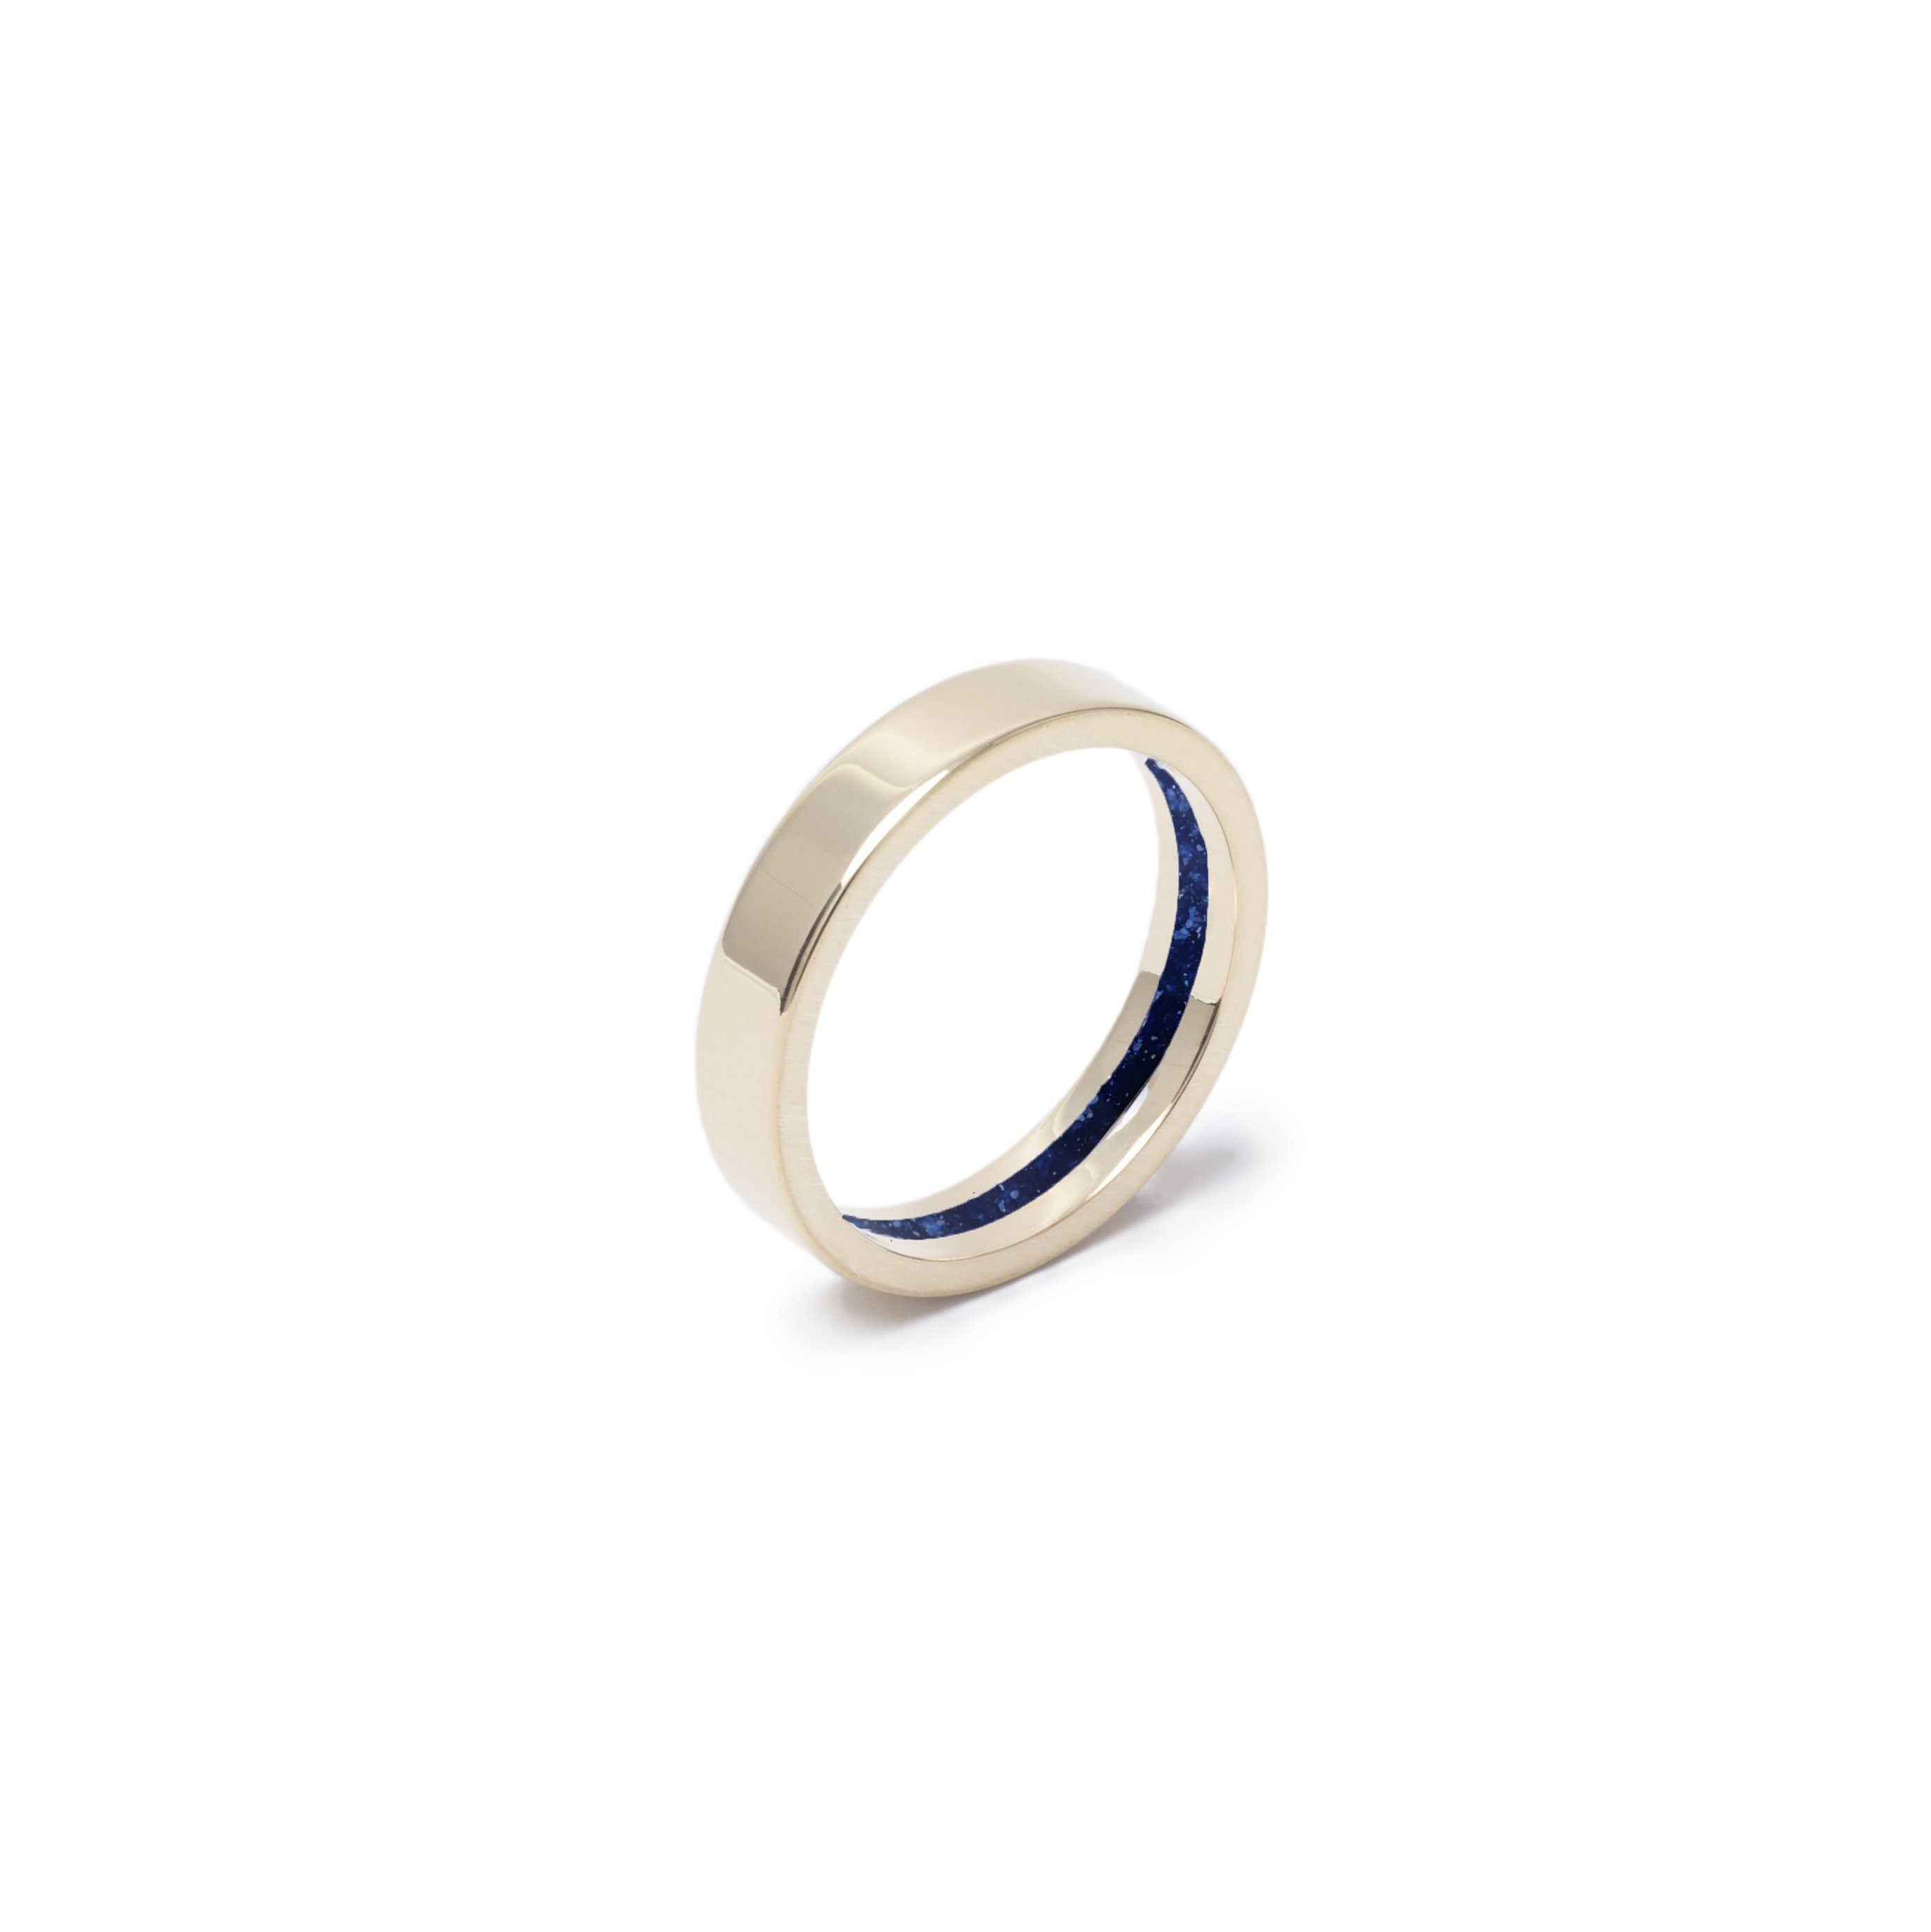 Everence Ring, 10k Yellow Gold everence.life 4mm Navy